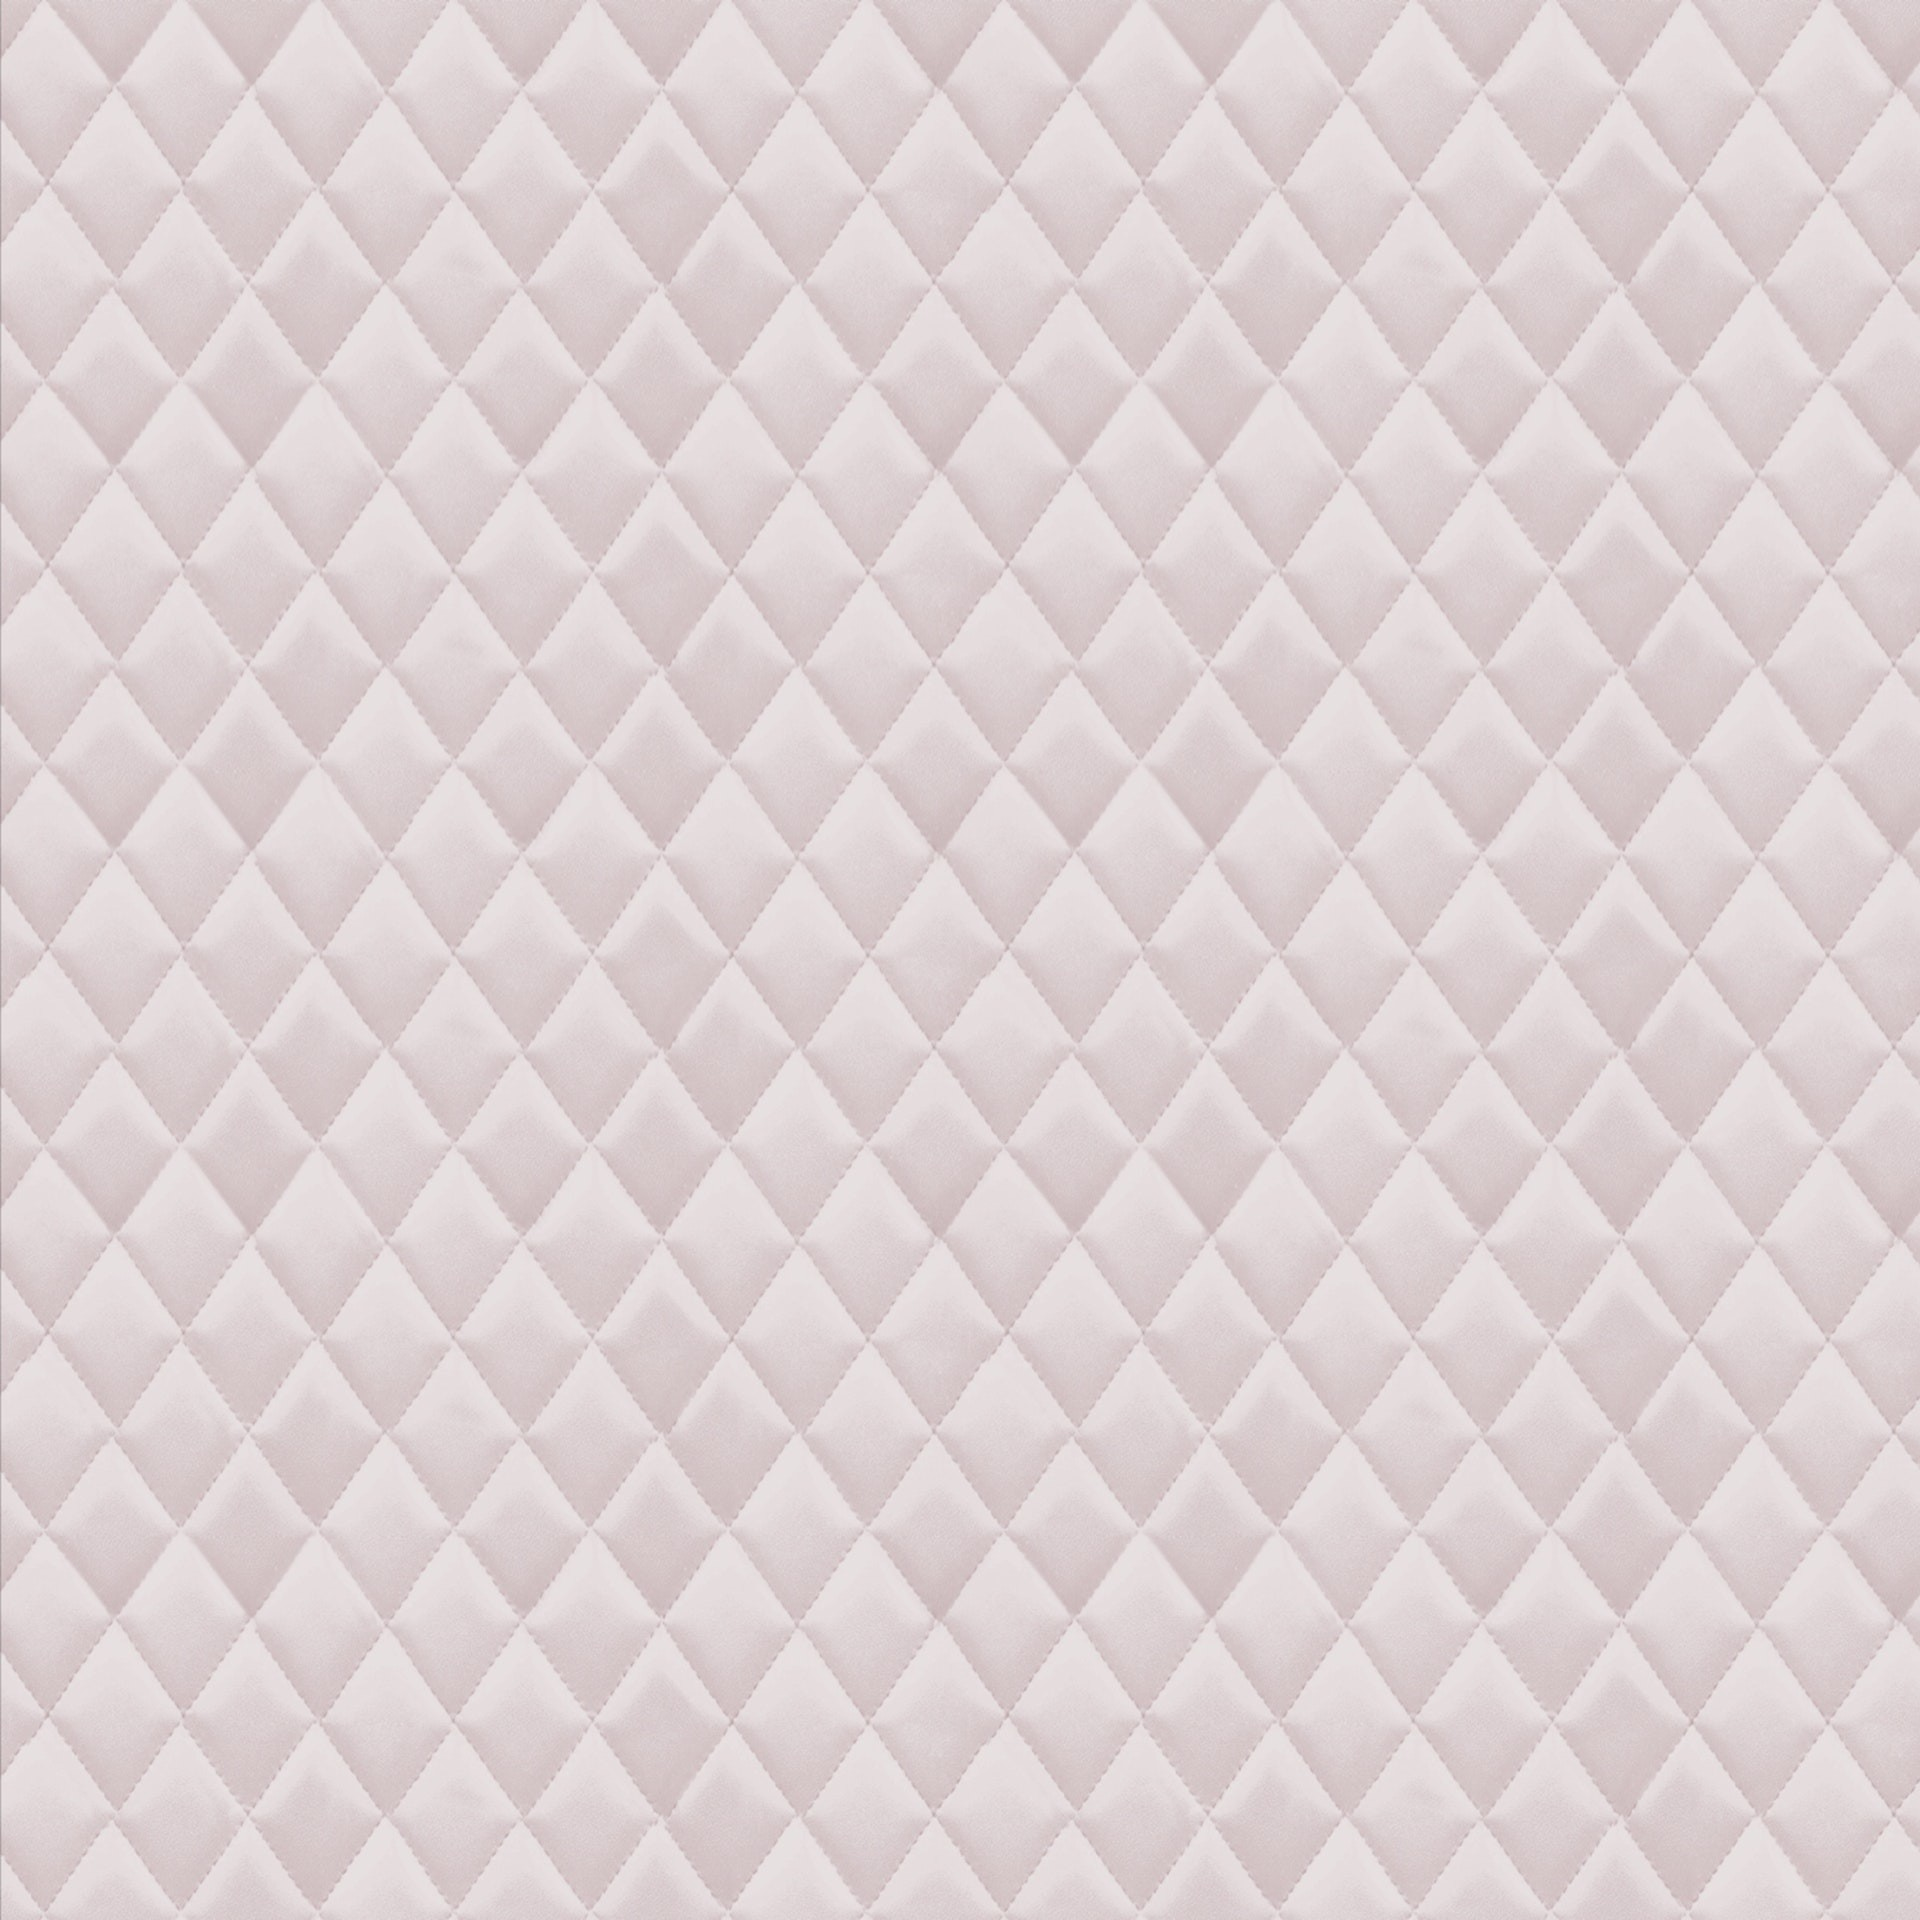 Solid gray wallpaper 50 images 3840x2160 voltagebd Image collections